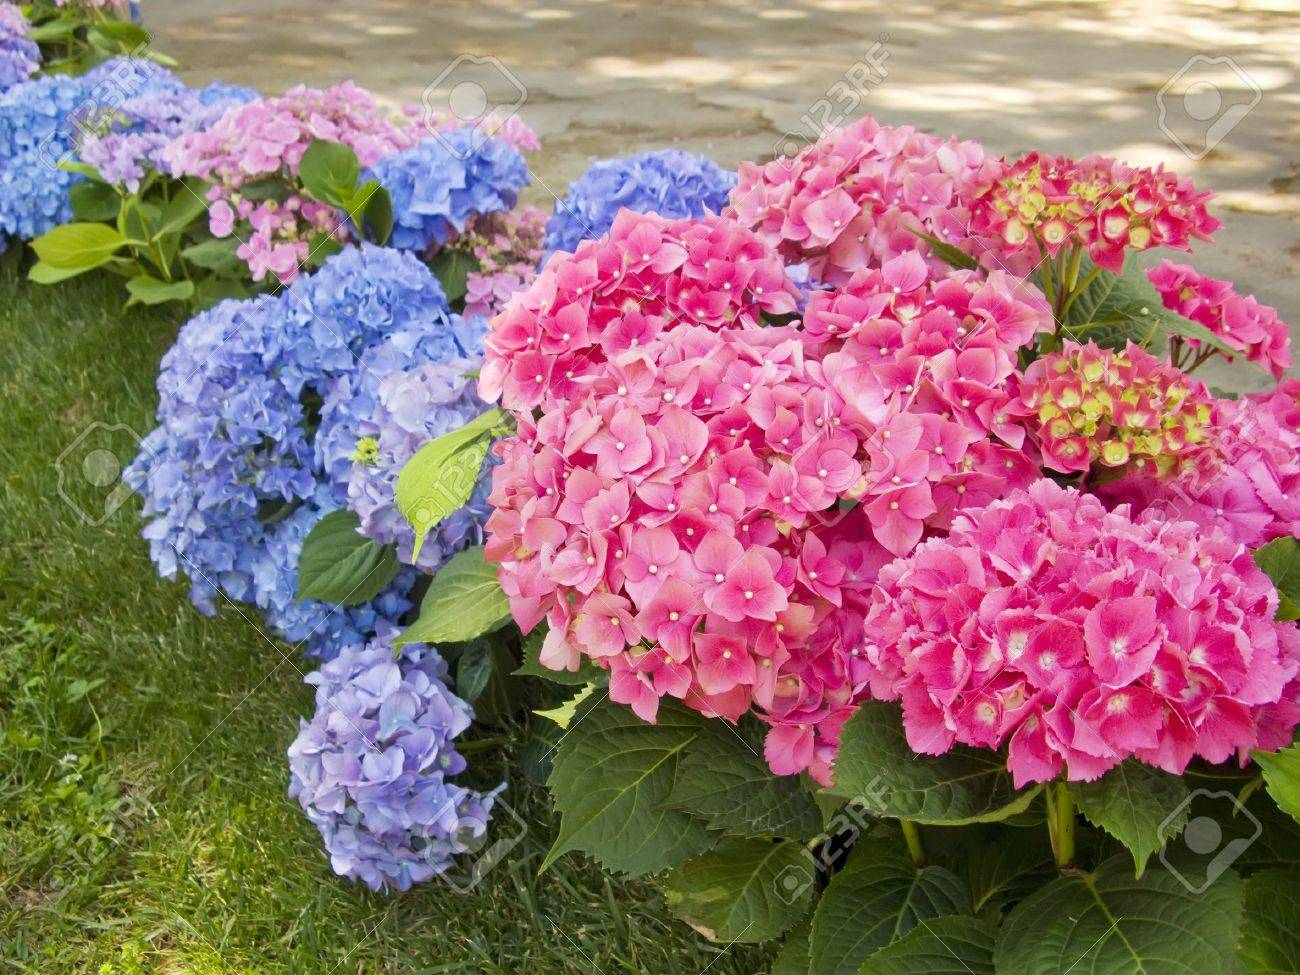 Hydrangea pink and blue flowers at the garden - 10681972